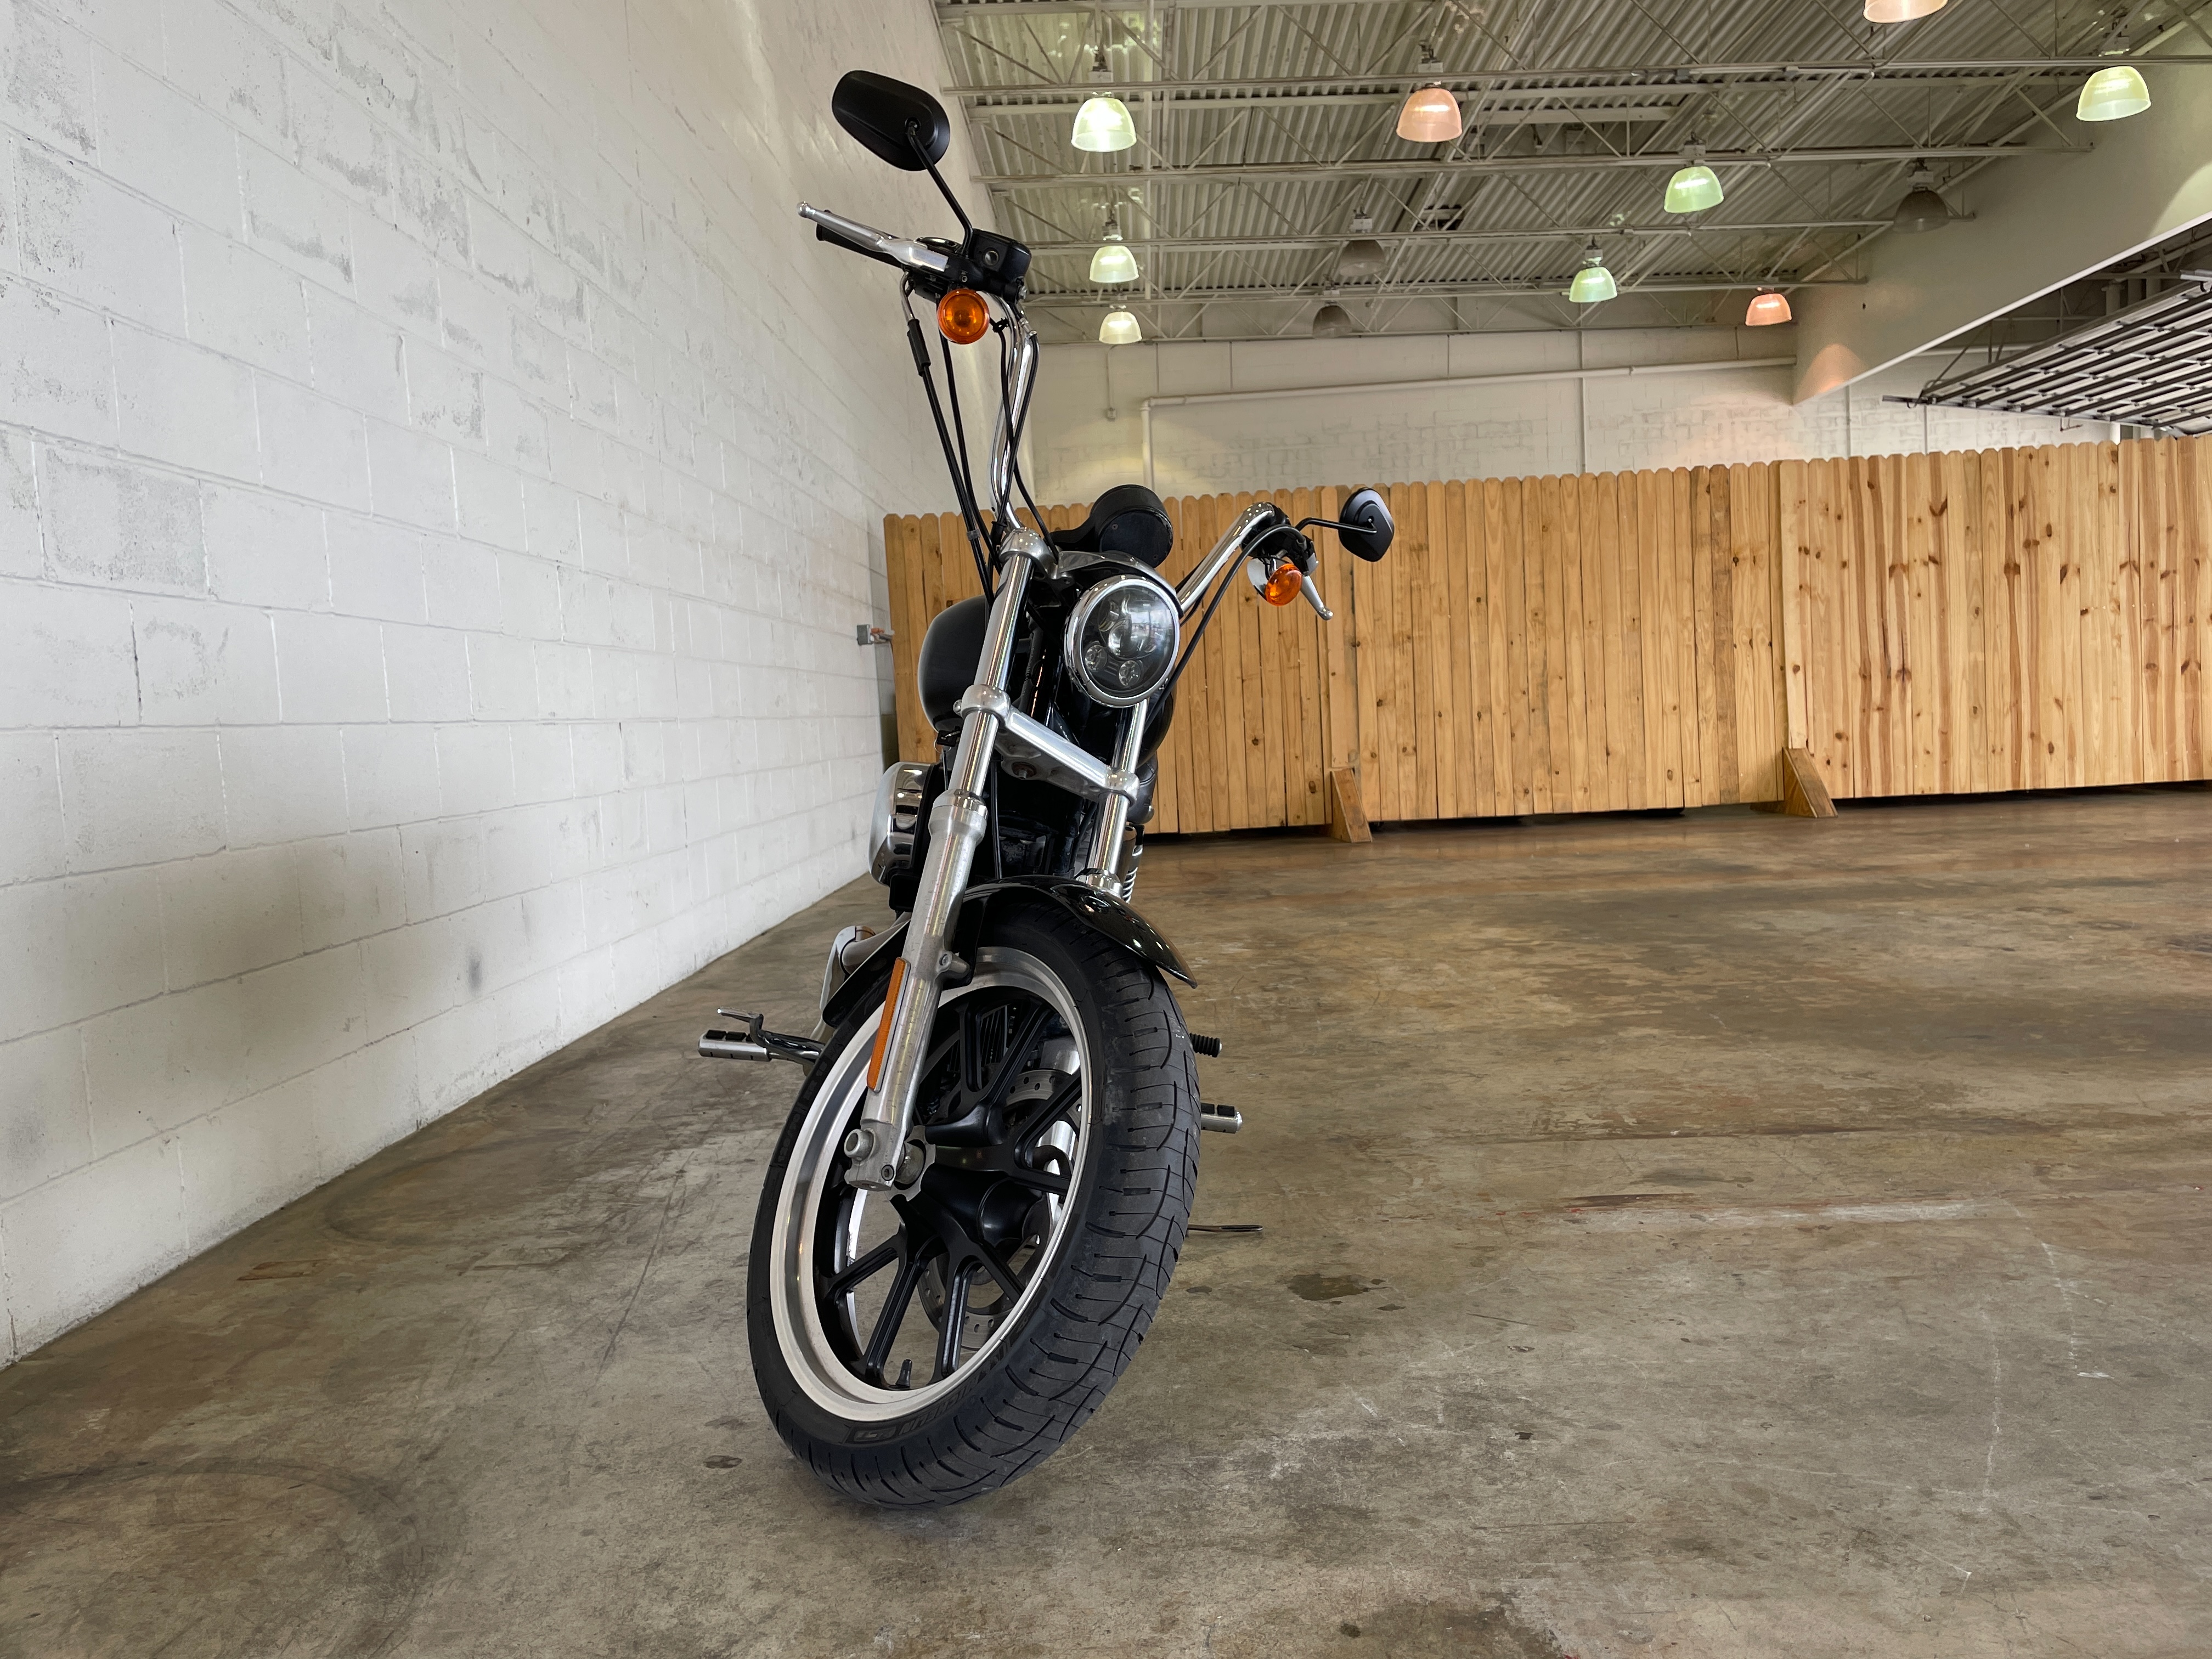 2014 Harley-Davidson Sportster SuperLow at Twisted Cycles